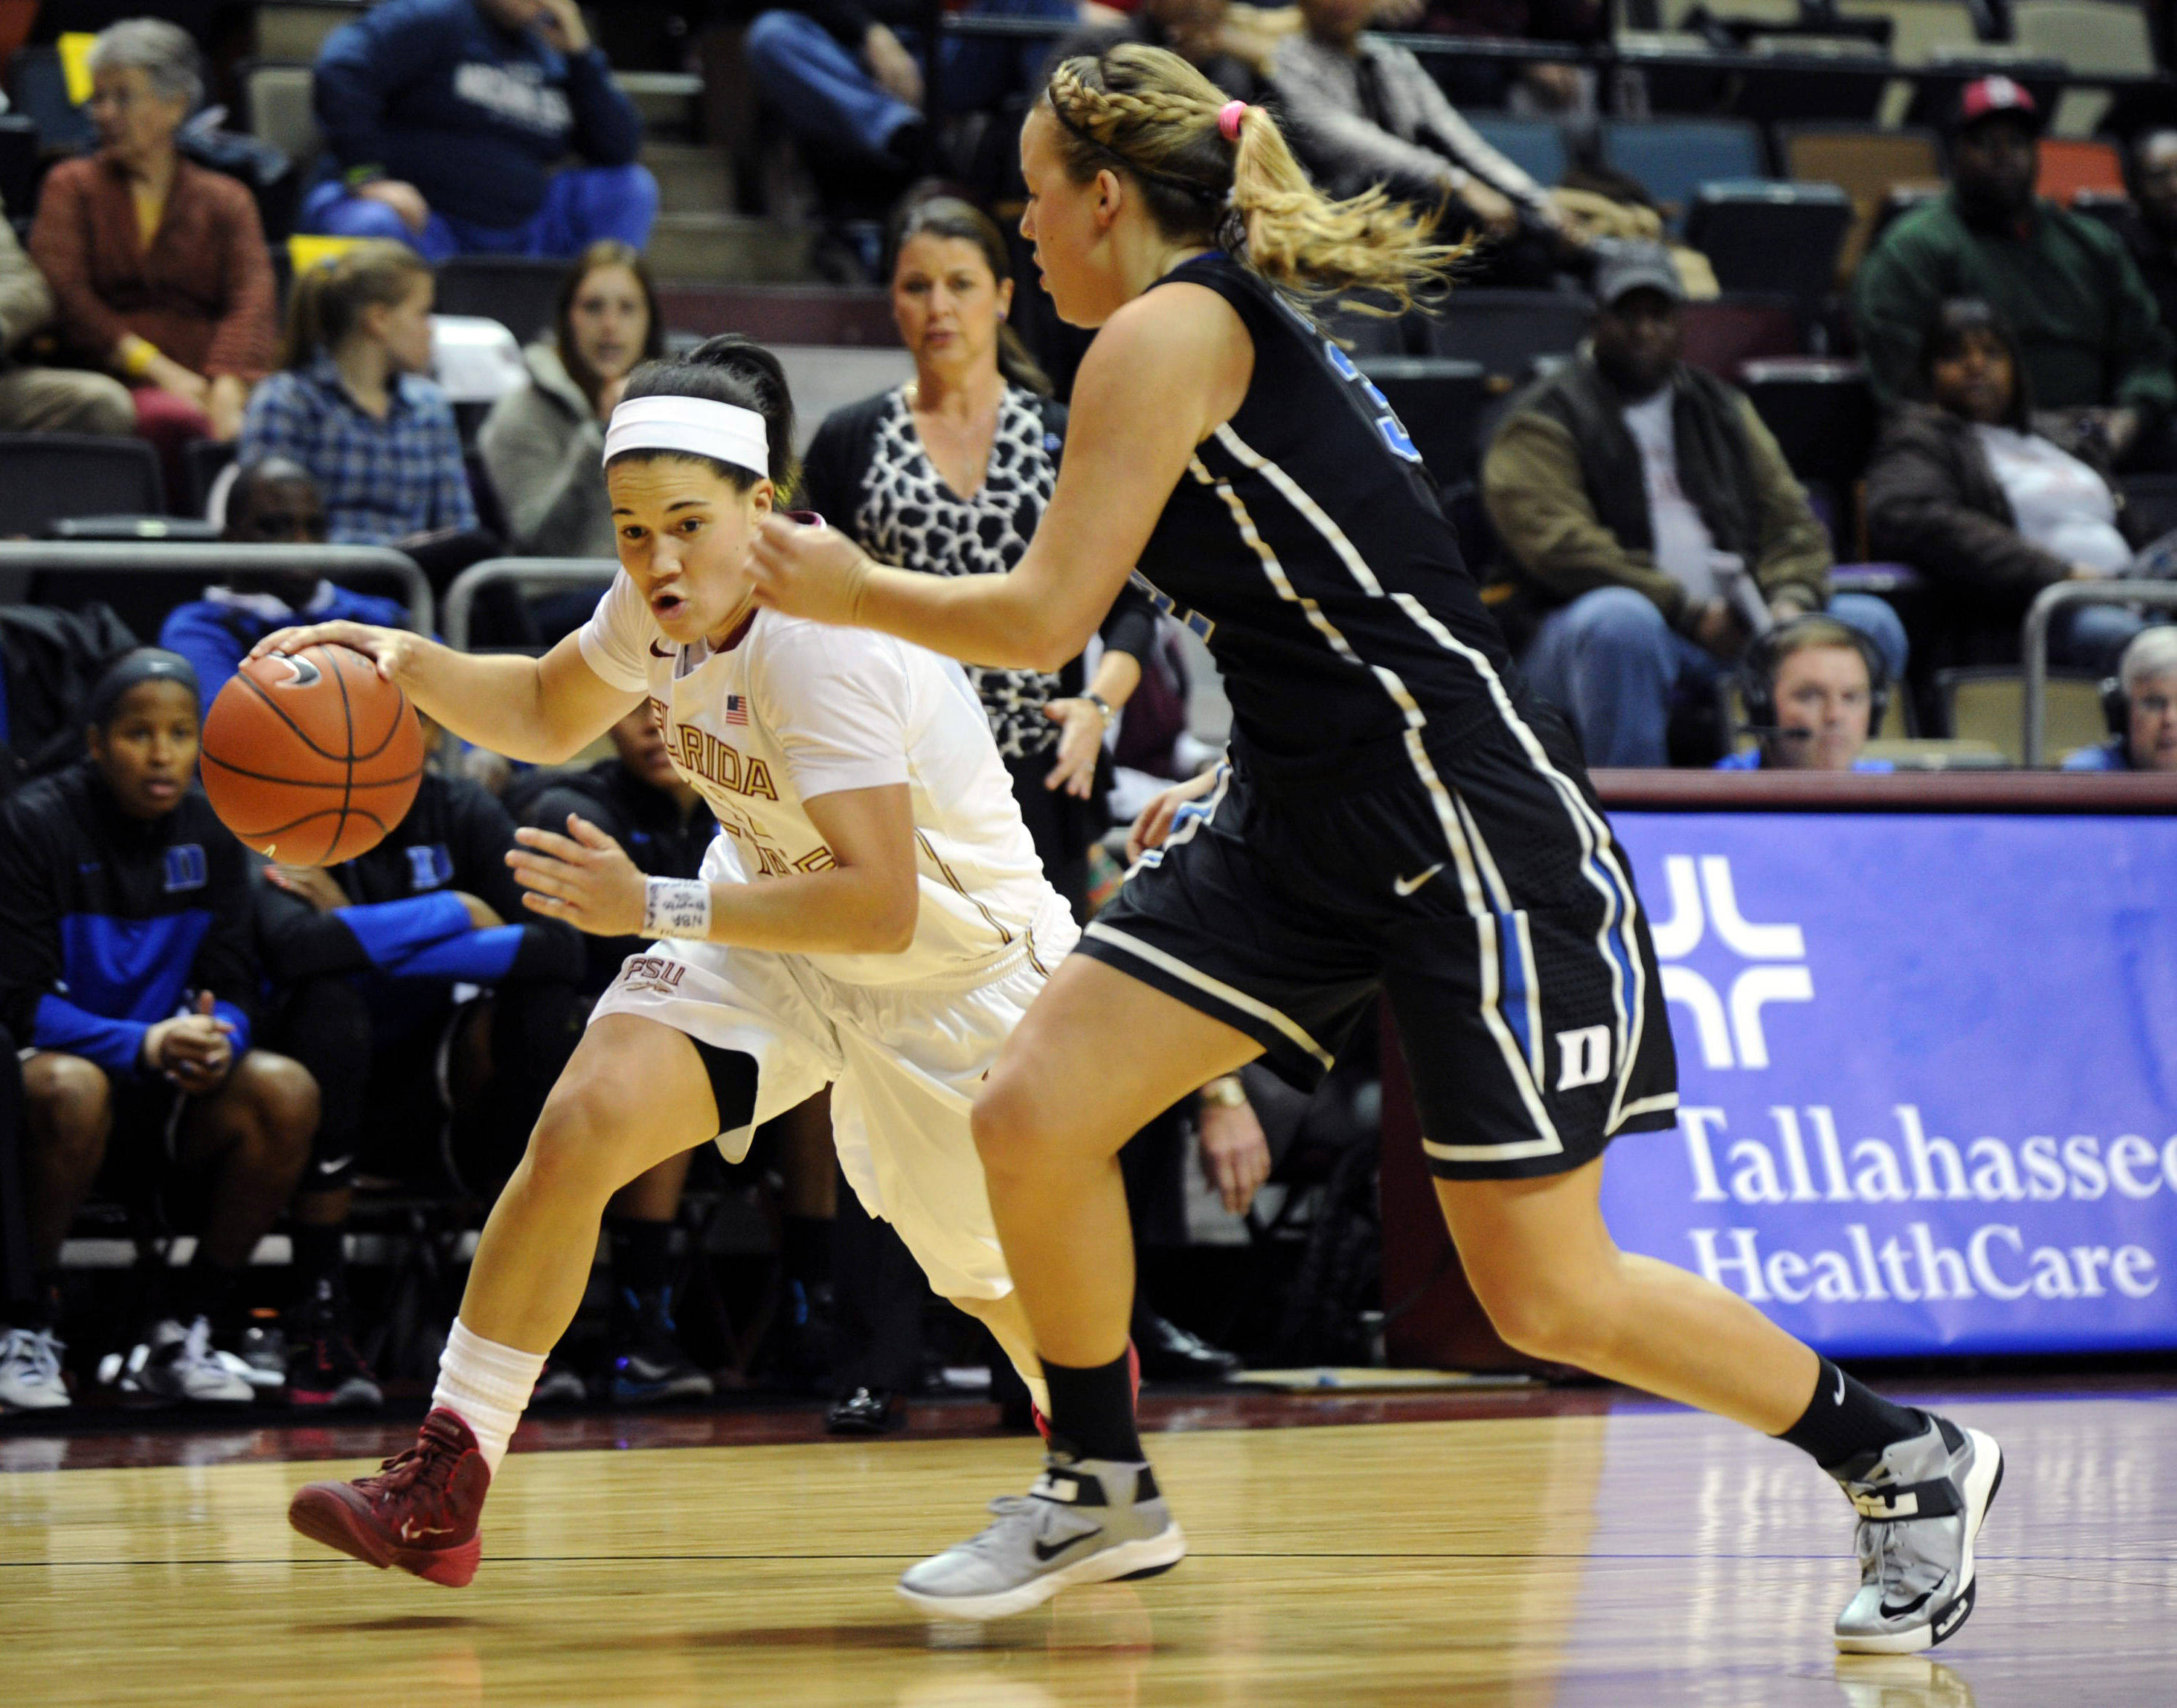 Jan 23, 2014; Tallahassee, FL, USA; Duke Blue Devils guard Tricia Liston (32) defends Florida State Seminoles guard Brittany Brown (12) during the first half of the game at the Donald L. Tucker Center (Tallahassee). Mandatory Credit: Melina Vastola-USA TODAY Sports